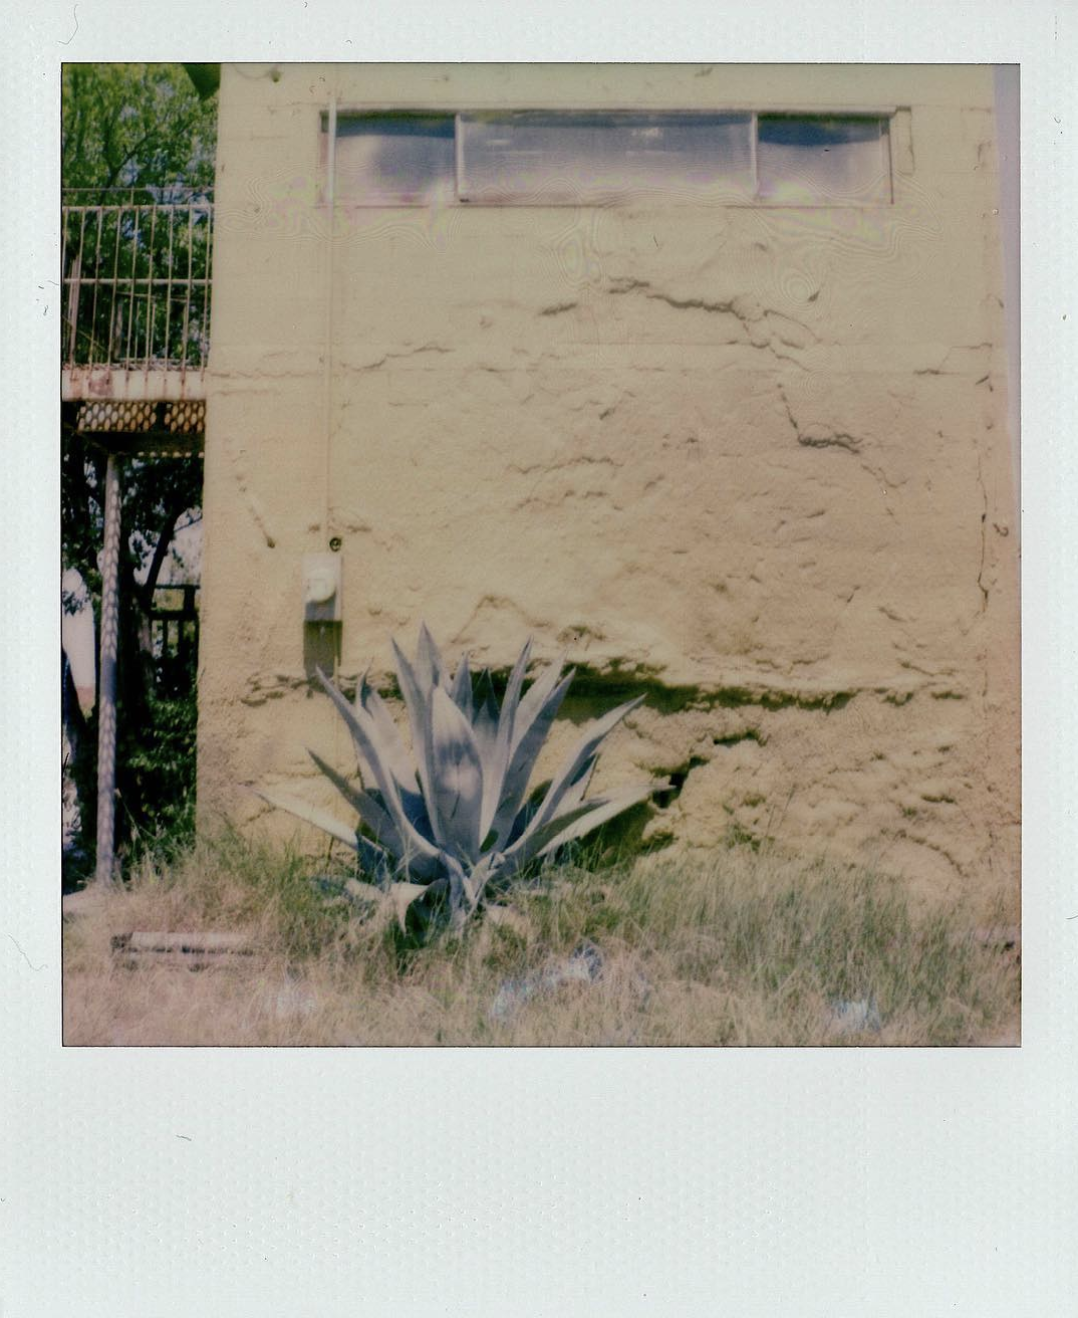 @instantdenton captured some agave on film.